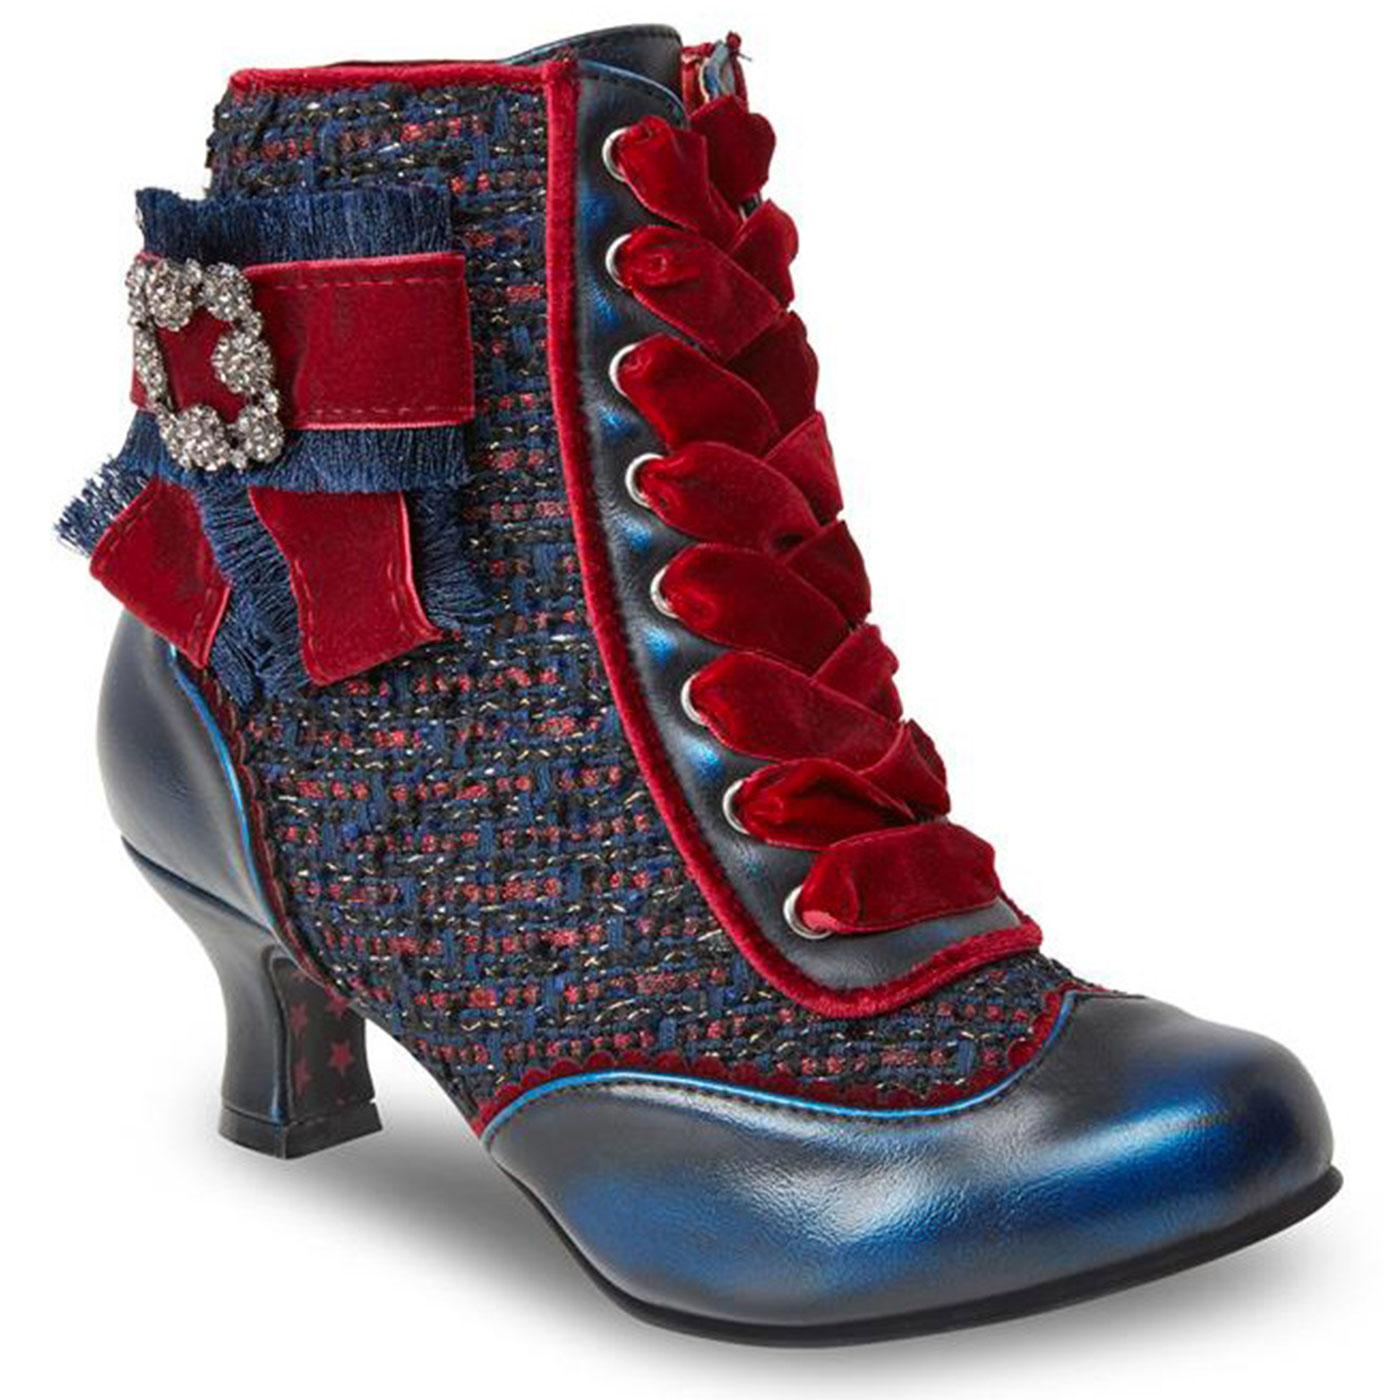 Duchess JOE BROWNS Woven Vintage Heeled Boots